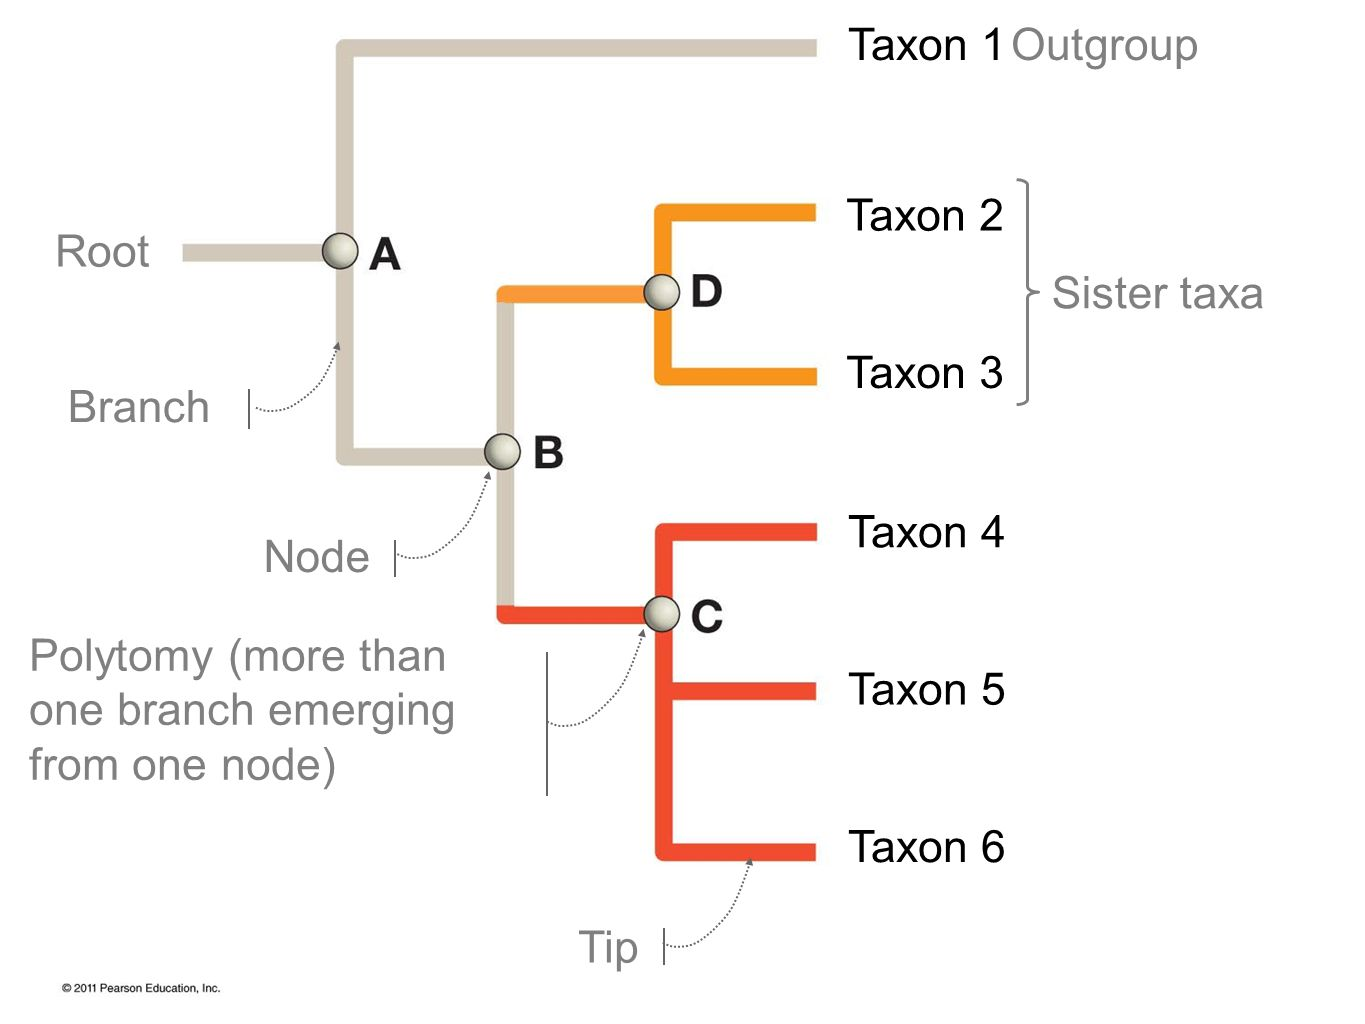 Taxon 1 Taxon 2 Taxon 3 Taxon 4 Taxon 5 Taxon 6 Sister taxa Outgroup Root Branch Node Tip Polytomy (more than one branch emerging from one node)